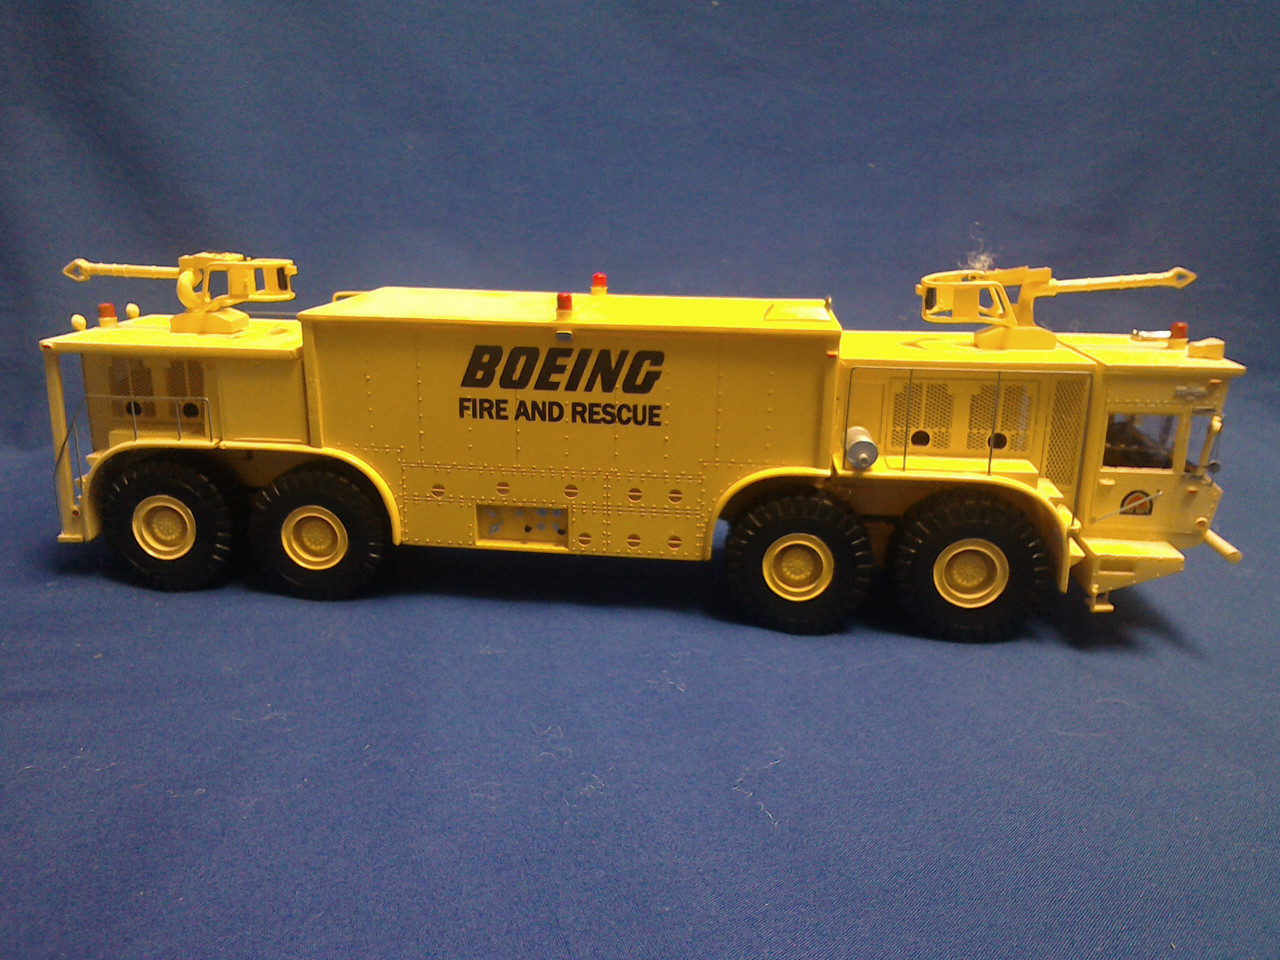 Picture of Oshkosh P15 Twin Engine 8X8 Fire Crash Truck - yellow BOEING